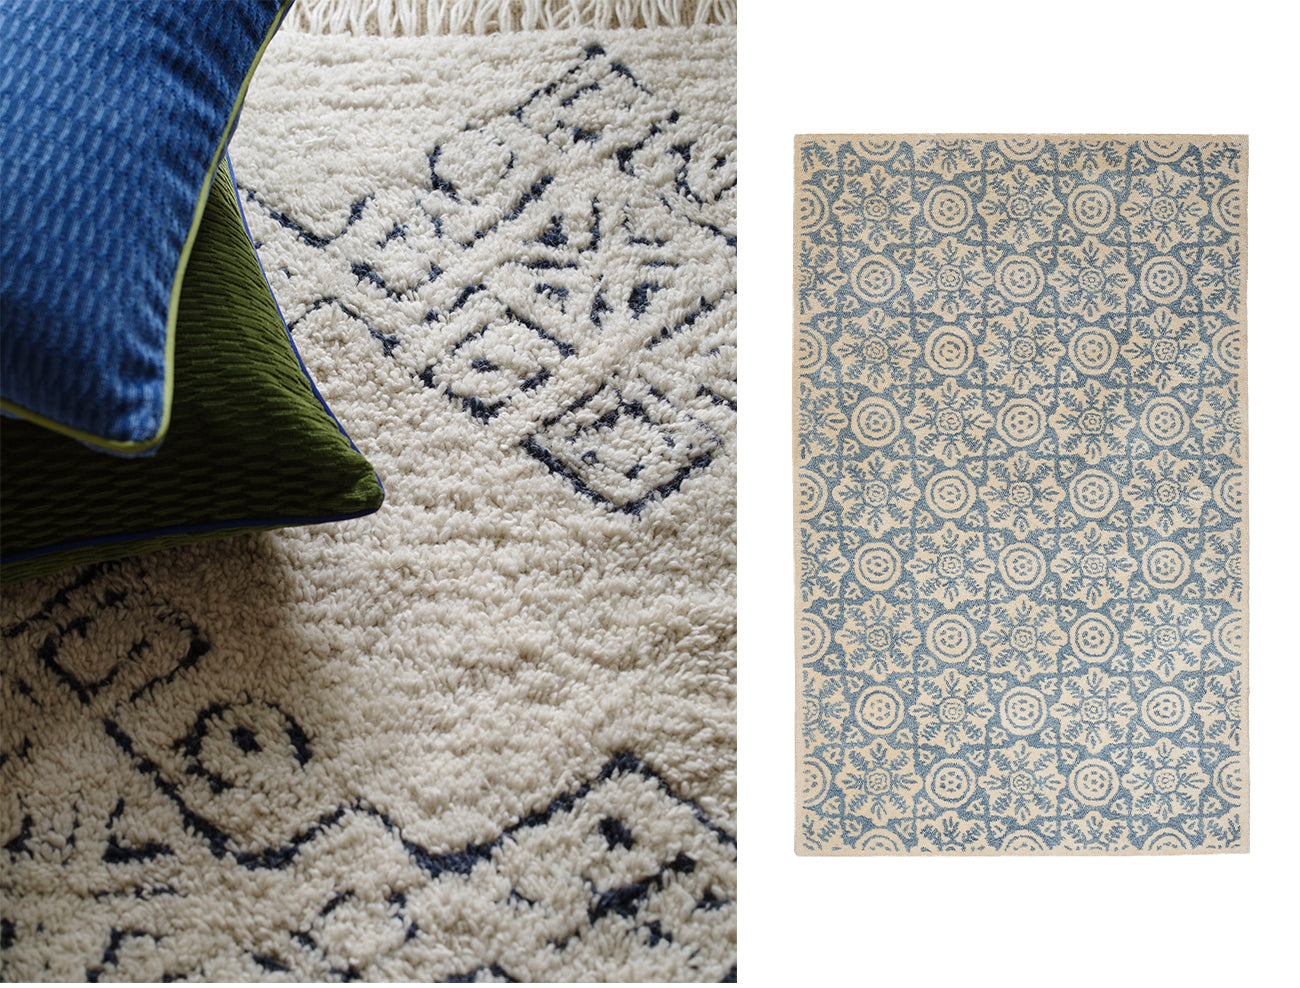 Wicklewood Mali and Rossmore rugs, both hand-tufted and woven in India these blue rugs are perfect for your living room or bedroom